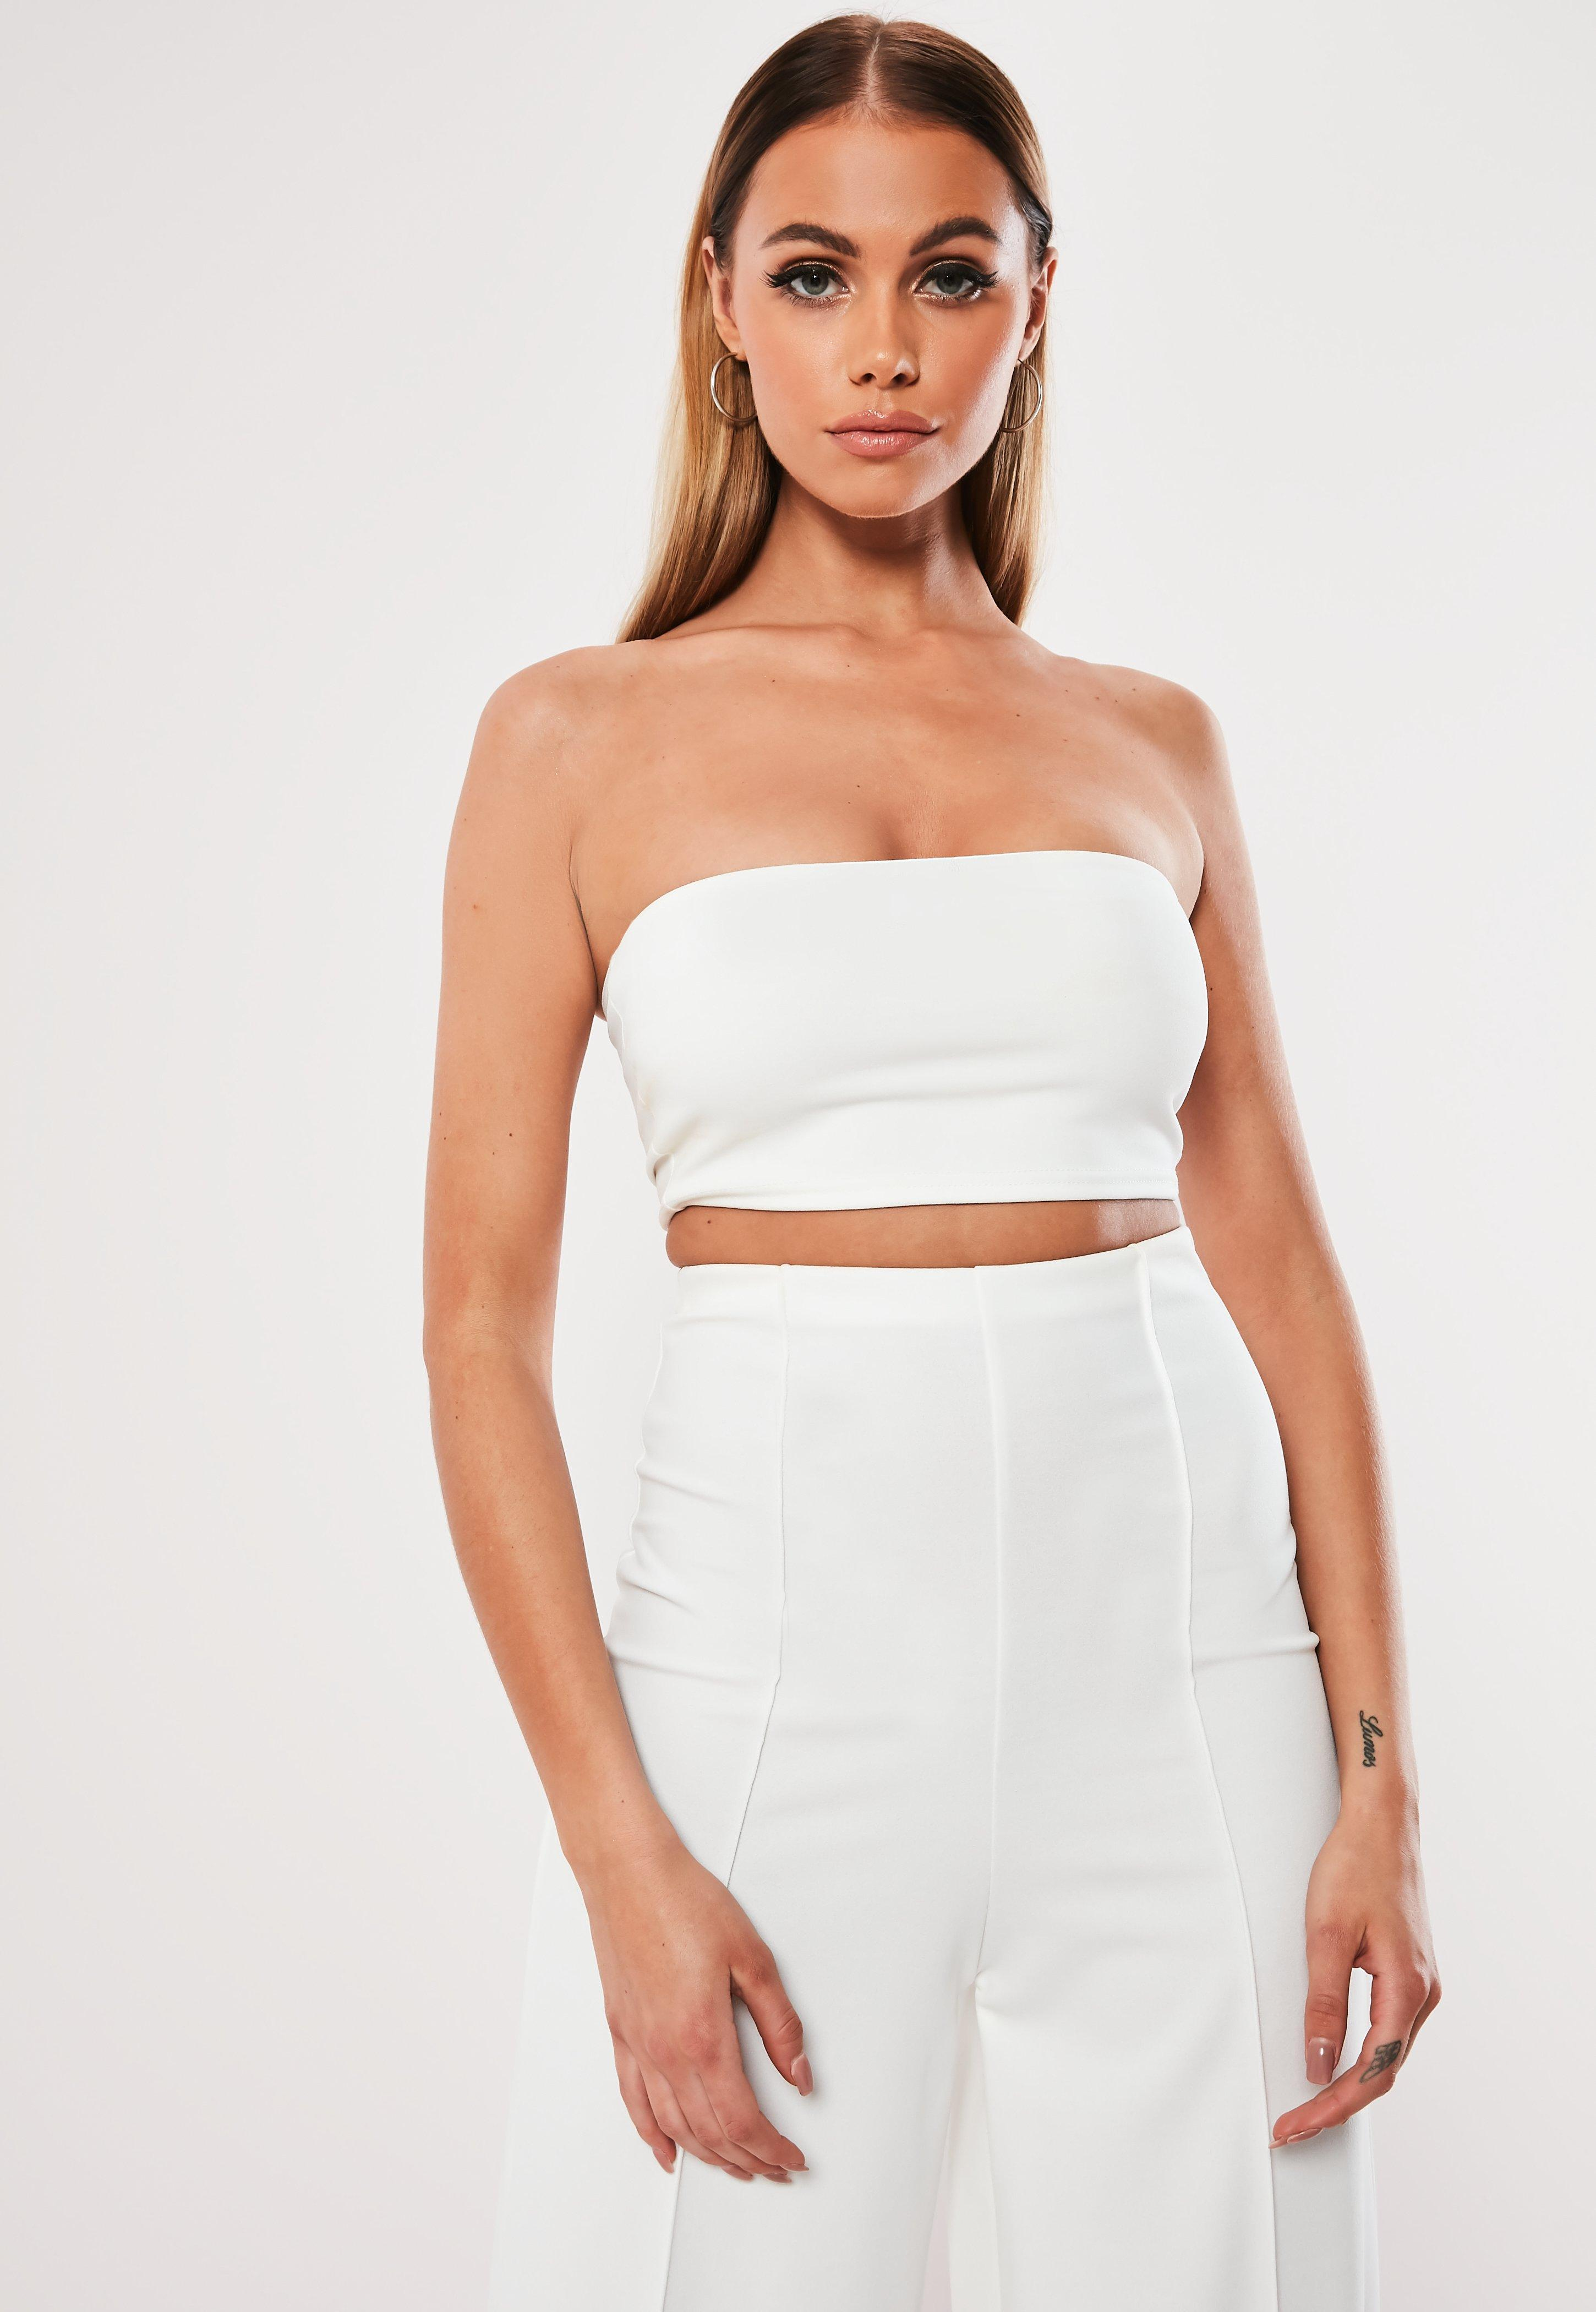 08071498d84 Missguided - White Co Ord Crepe Bandeau Bralet - Lyst. View fullscreen